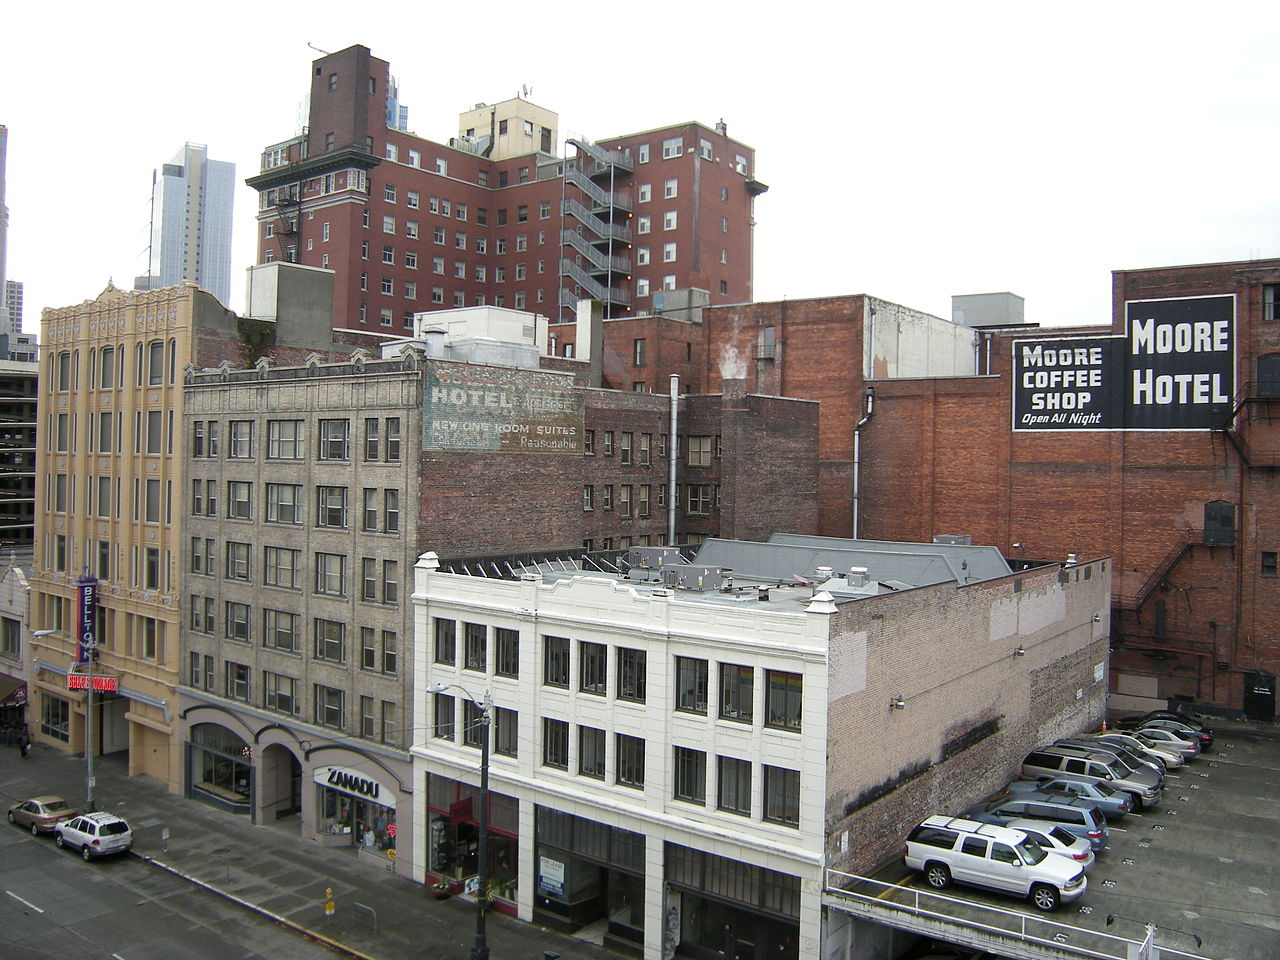 File:Seattle - 1900 block of Third Avenue 01.jpg - Wikimedia Commons